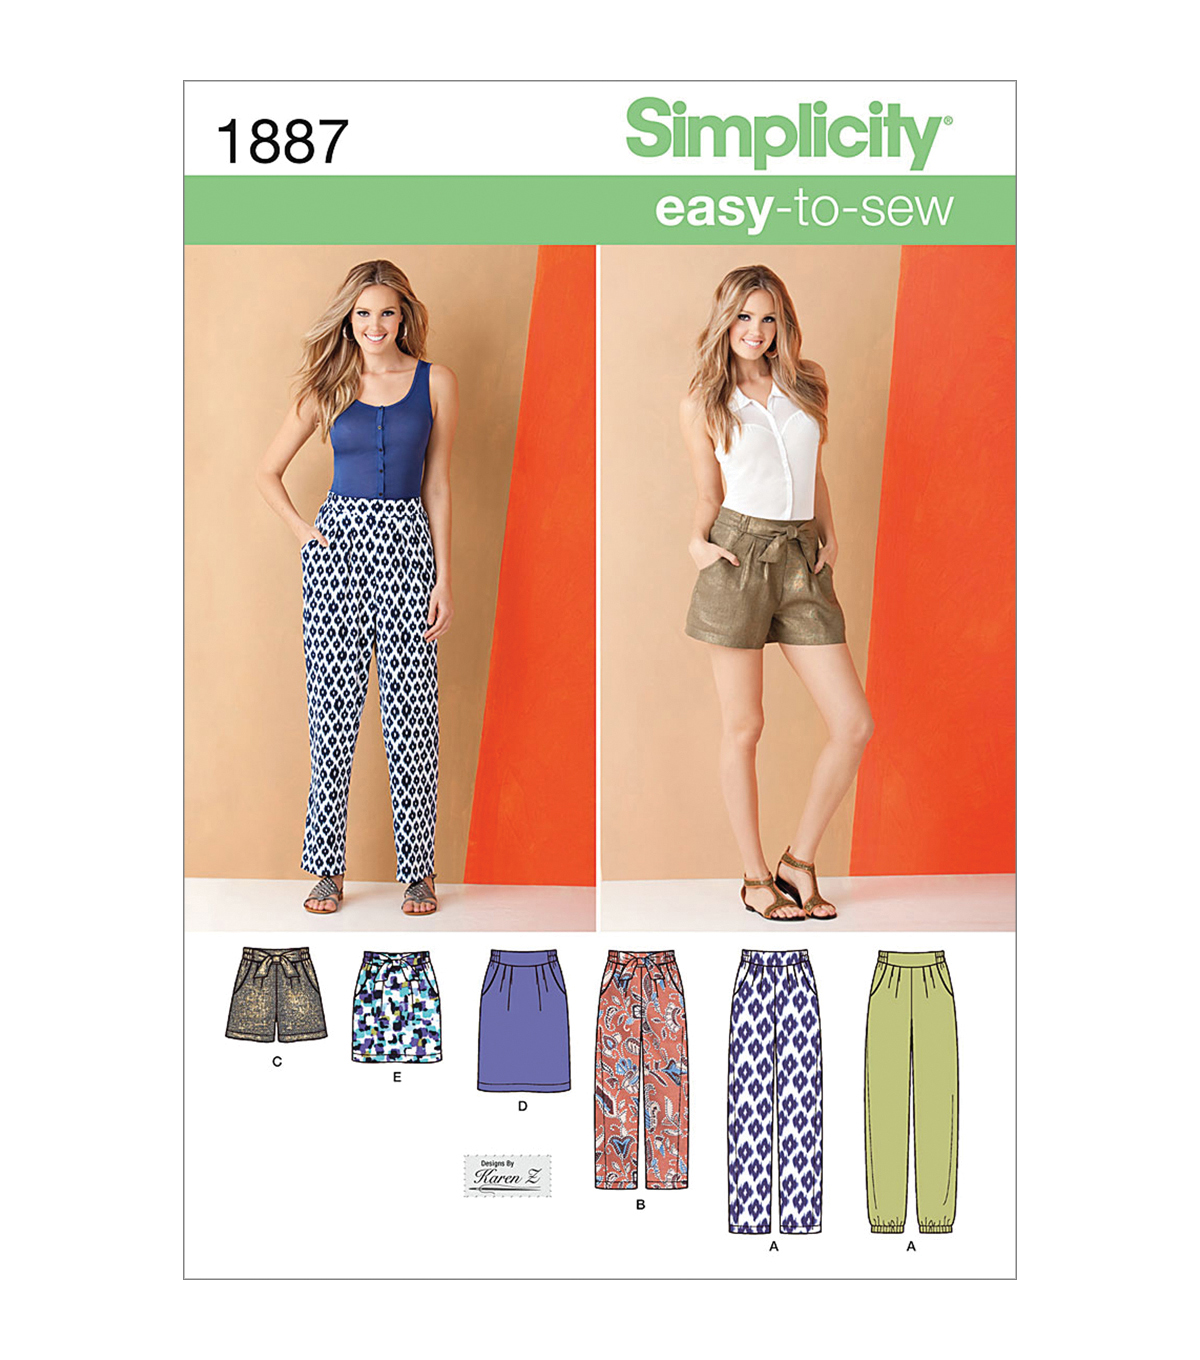 Simplicity Patterns Us1887K5-Simplicity Misses Skirts Pants-8-10-12-14-16